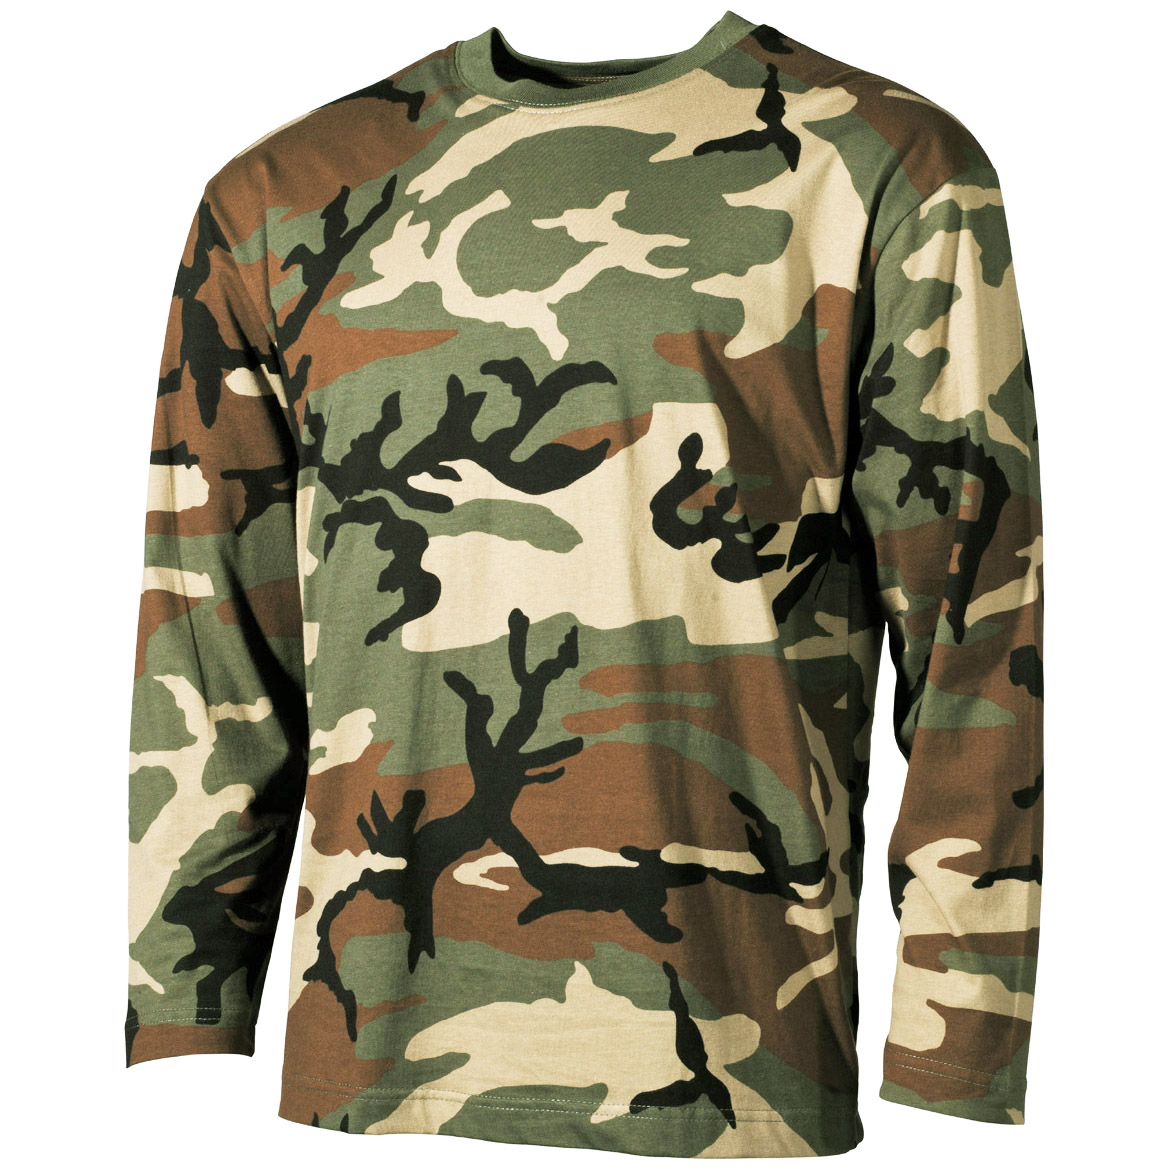 e6193104b502 Details about Us Style Combat Army Military Mens Long Sleeve T-Shirt  Woodland Camouflage S-Xxl